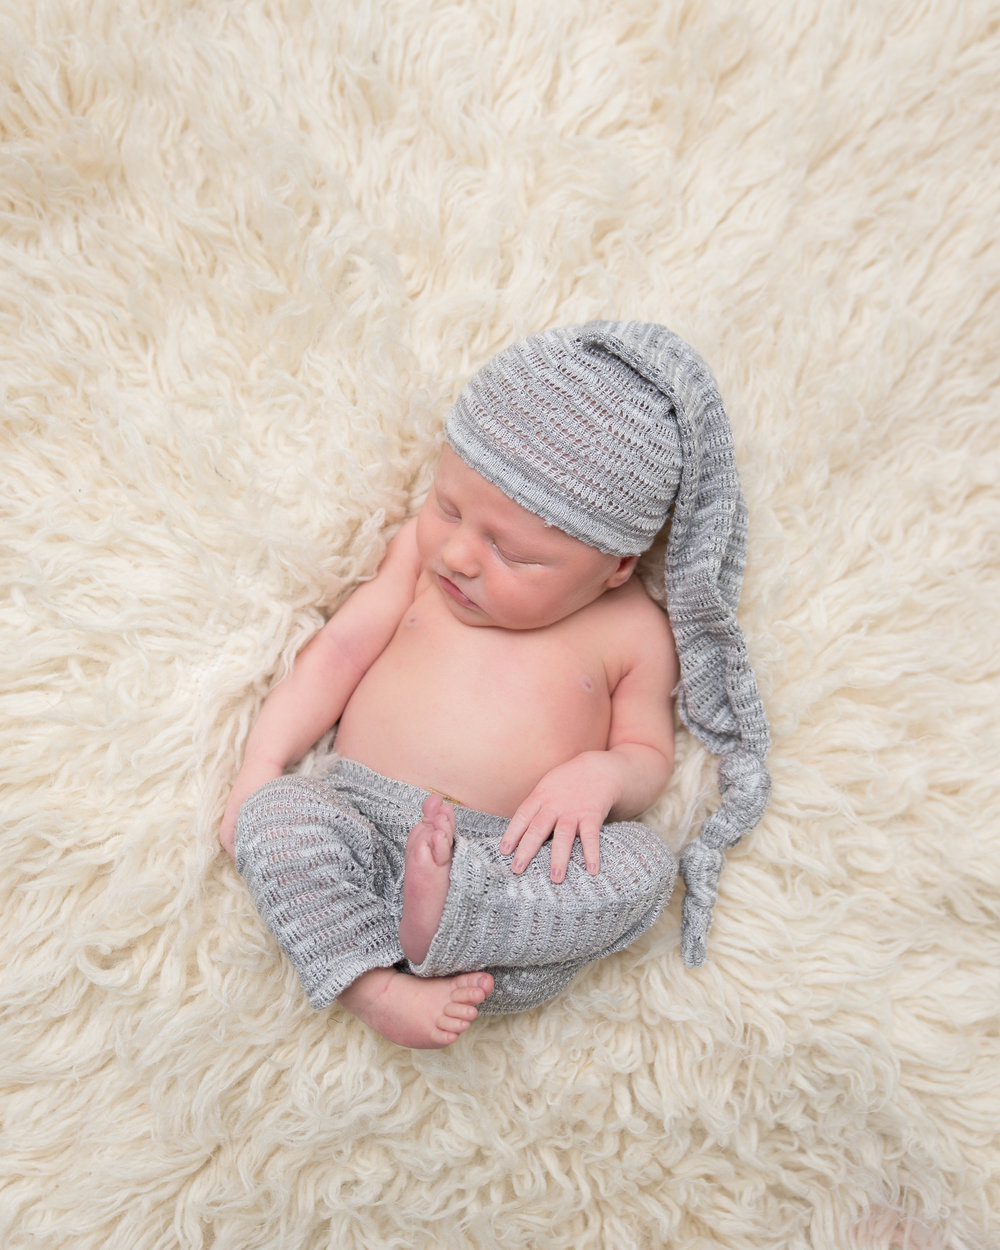 Chevy-chase-md-newborn-photographer58.jpg